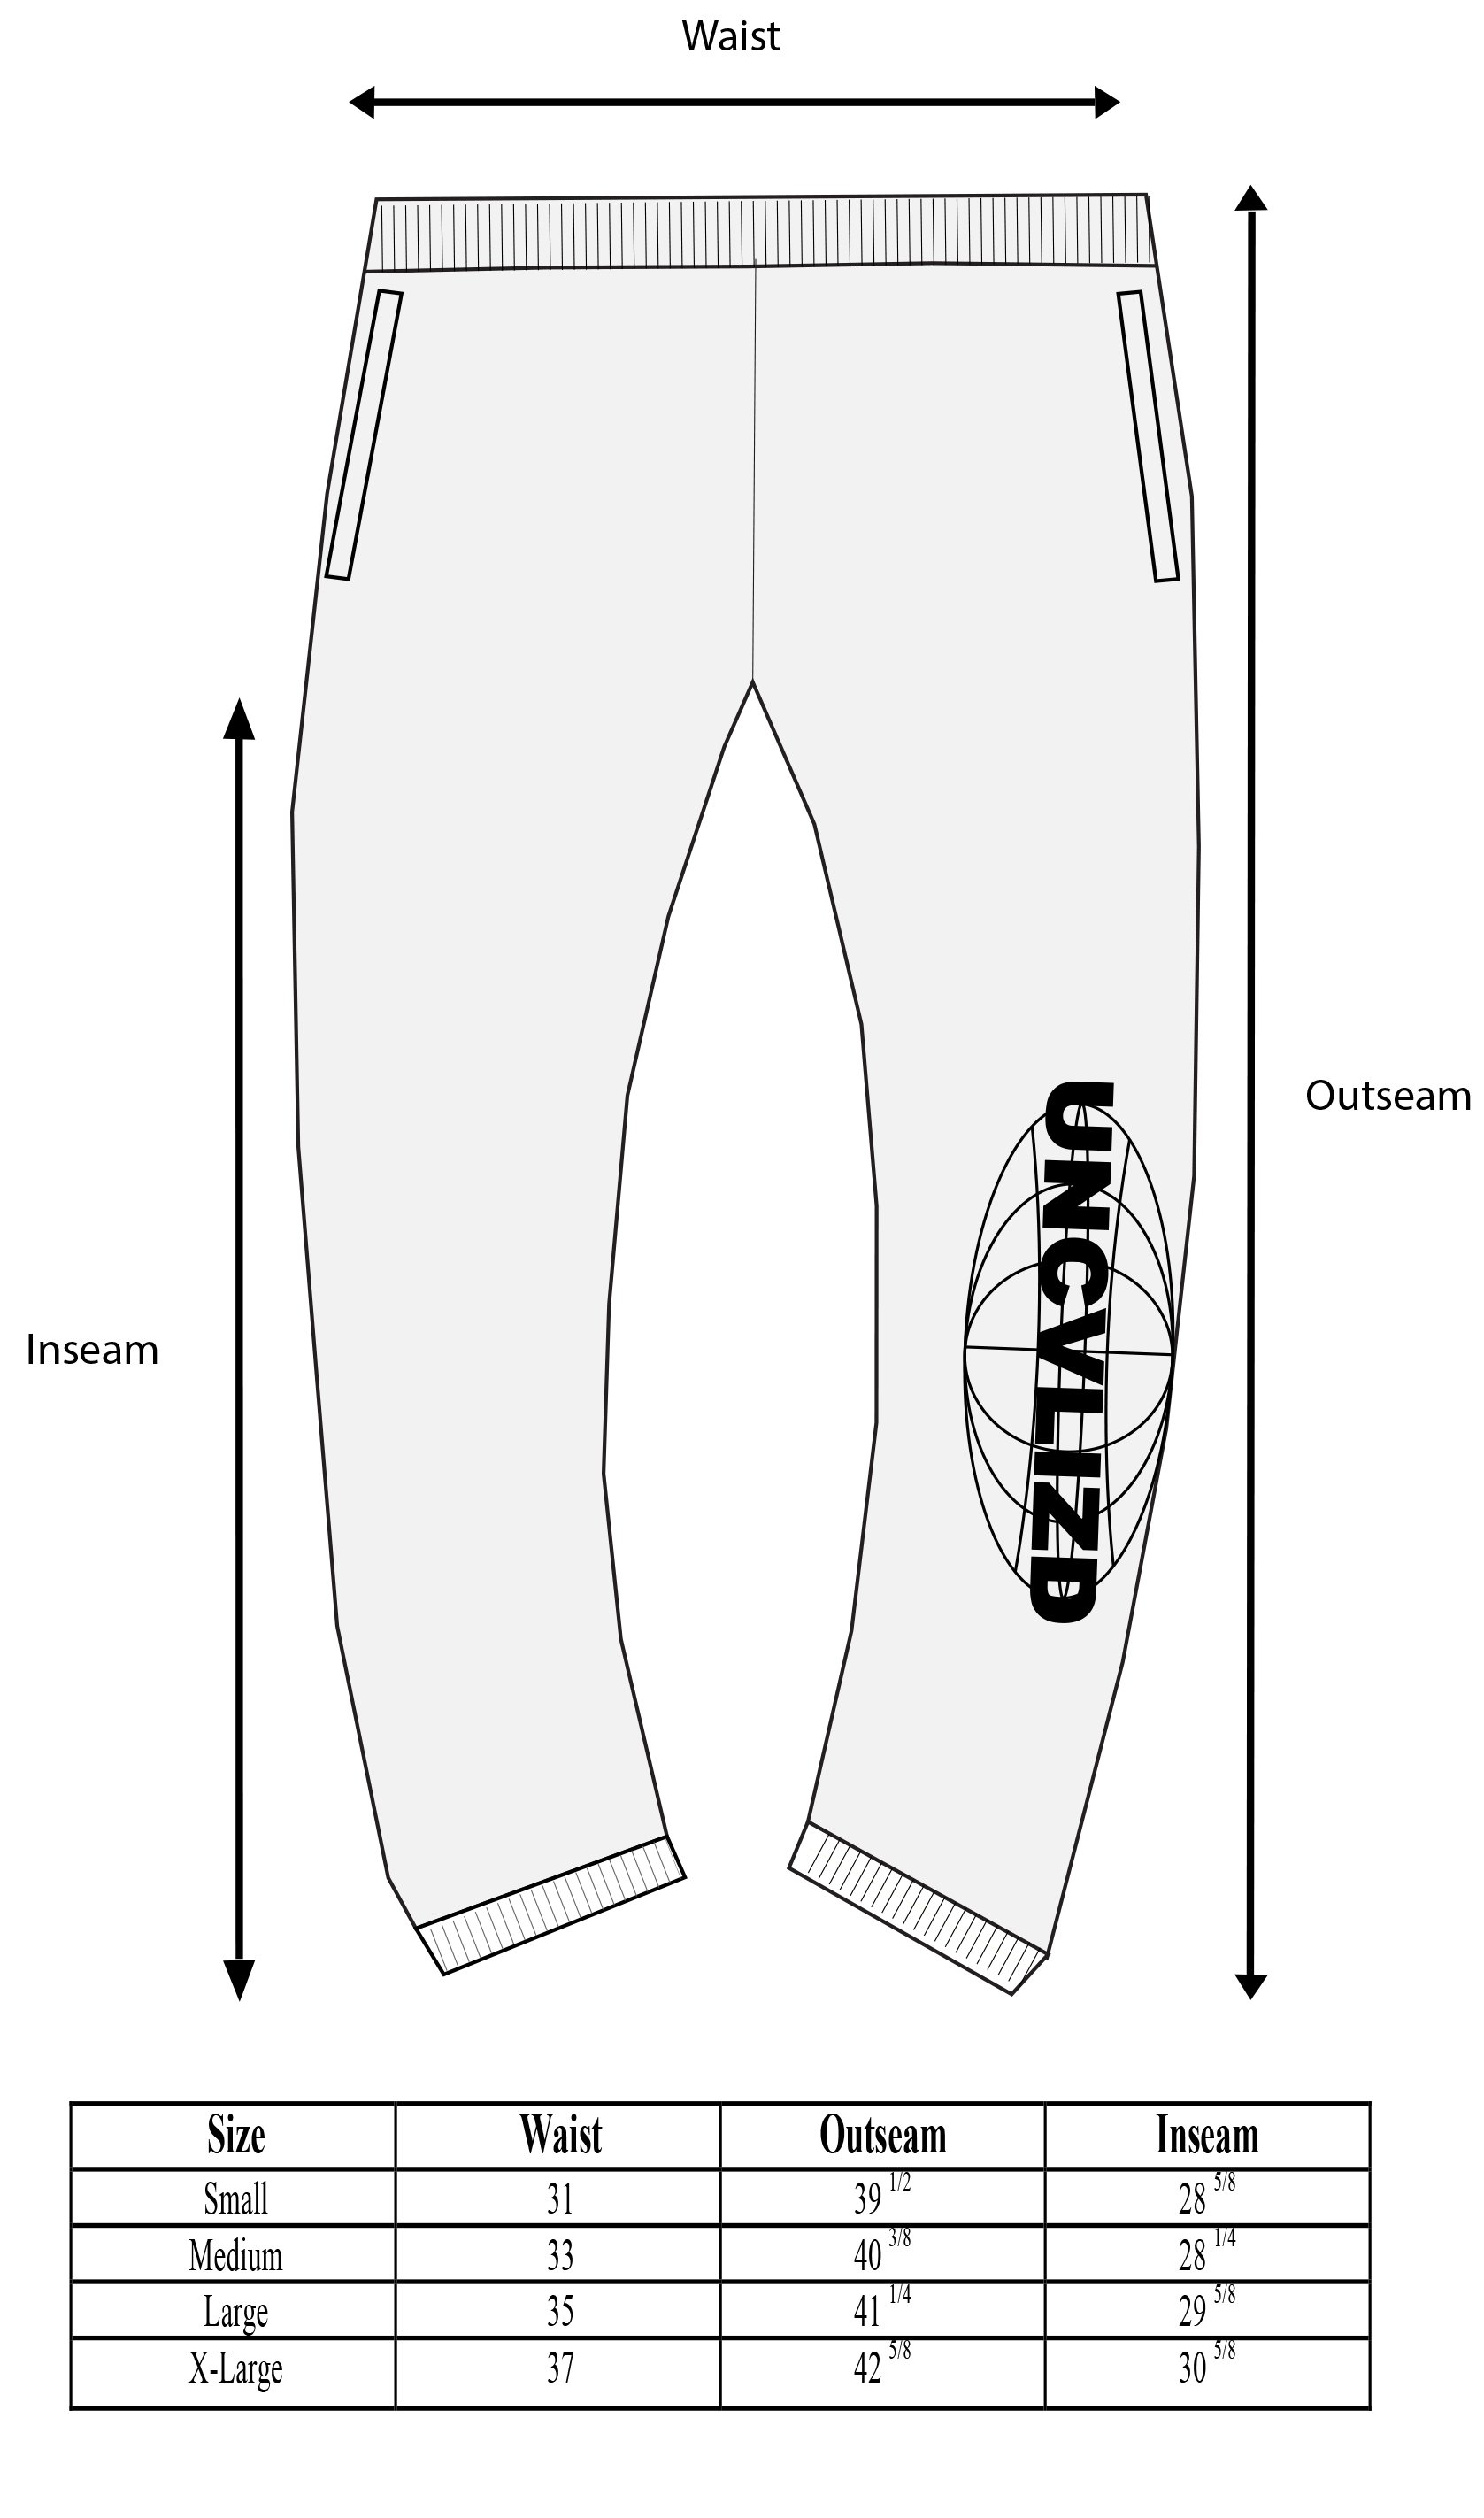 Worldwide Sweat Pants Size Guide.jpg